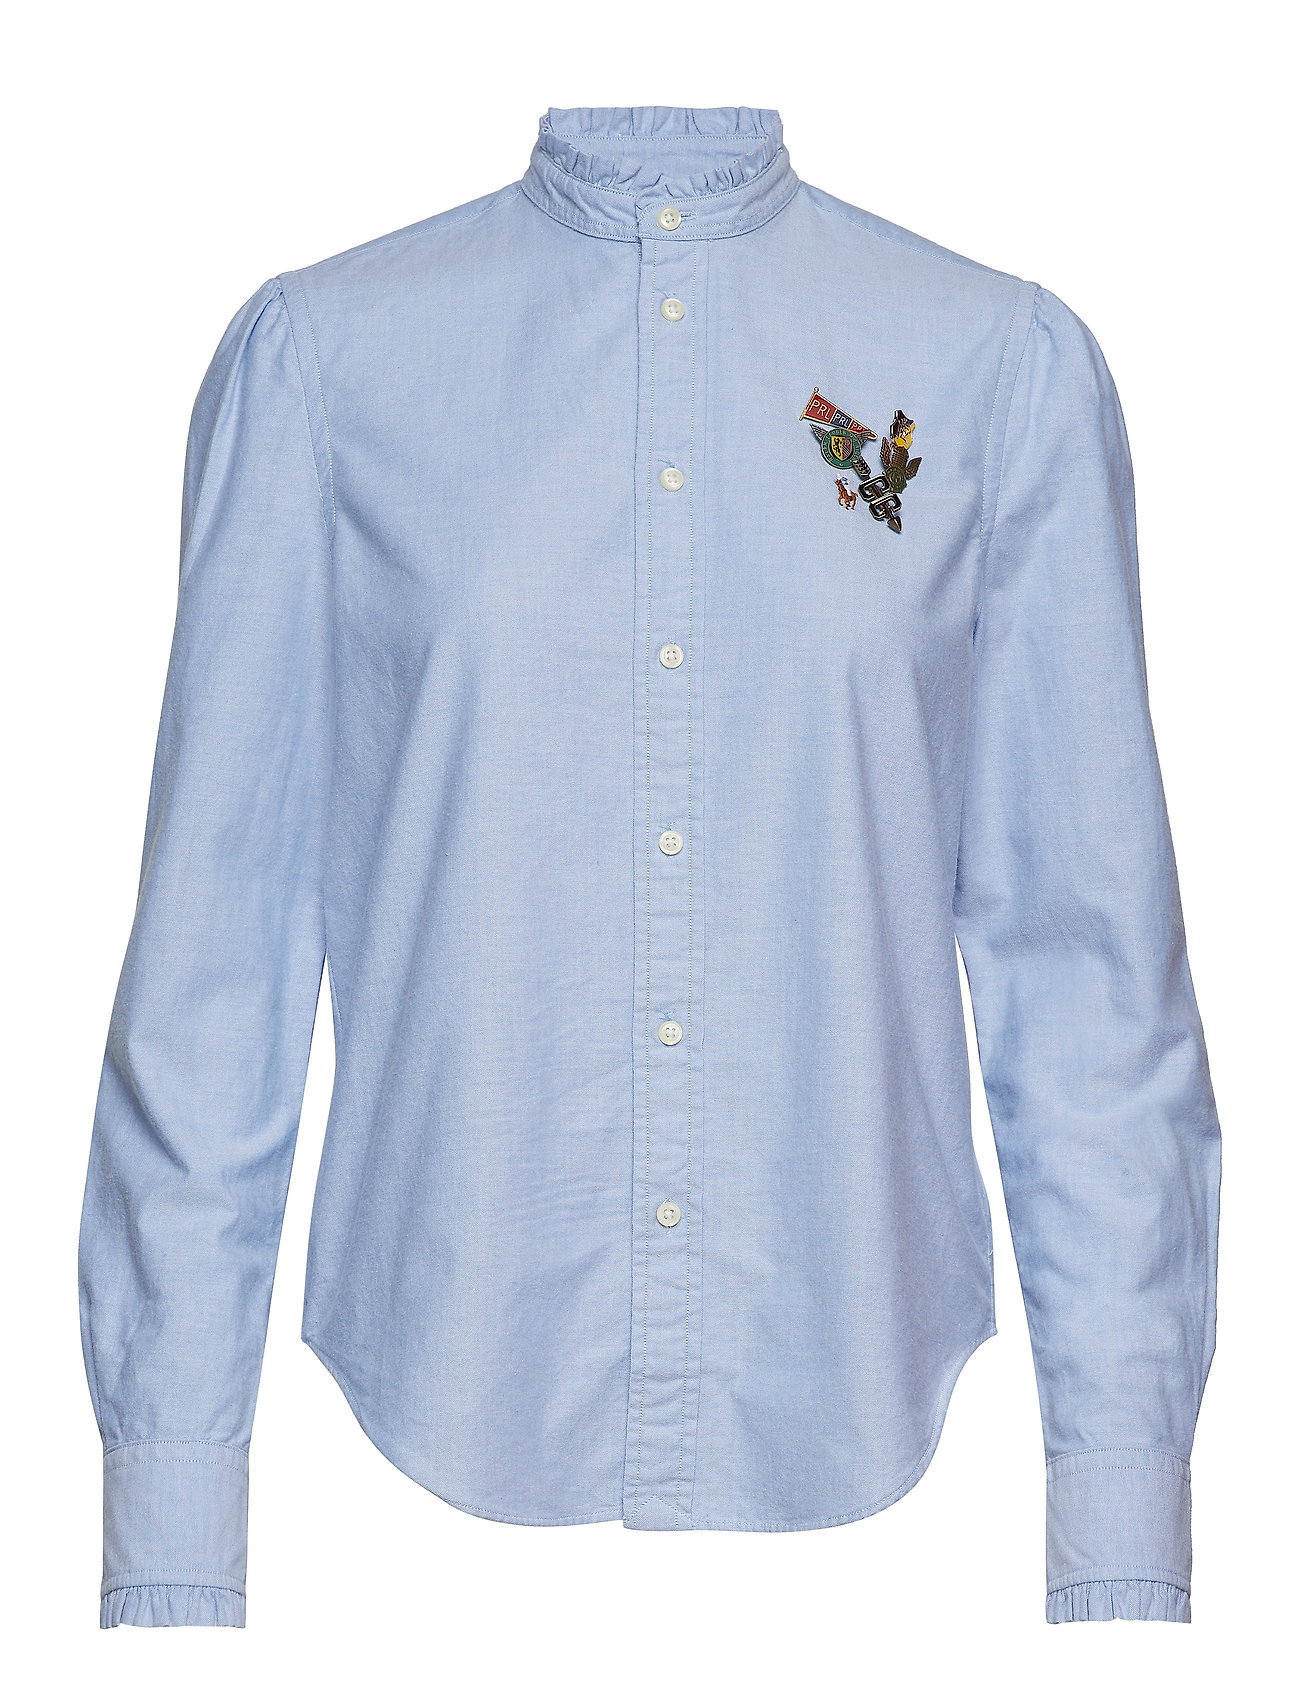 Polo Ralph Lauren Cotton Oxford Pin Shirt - BLUE HYACINTH